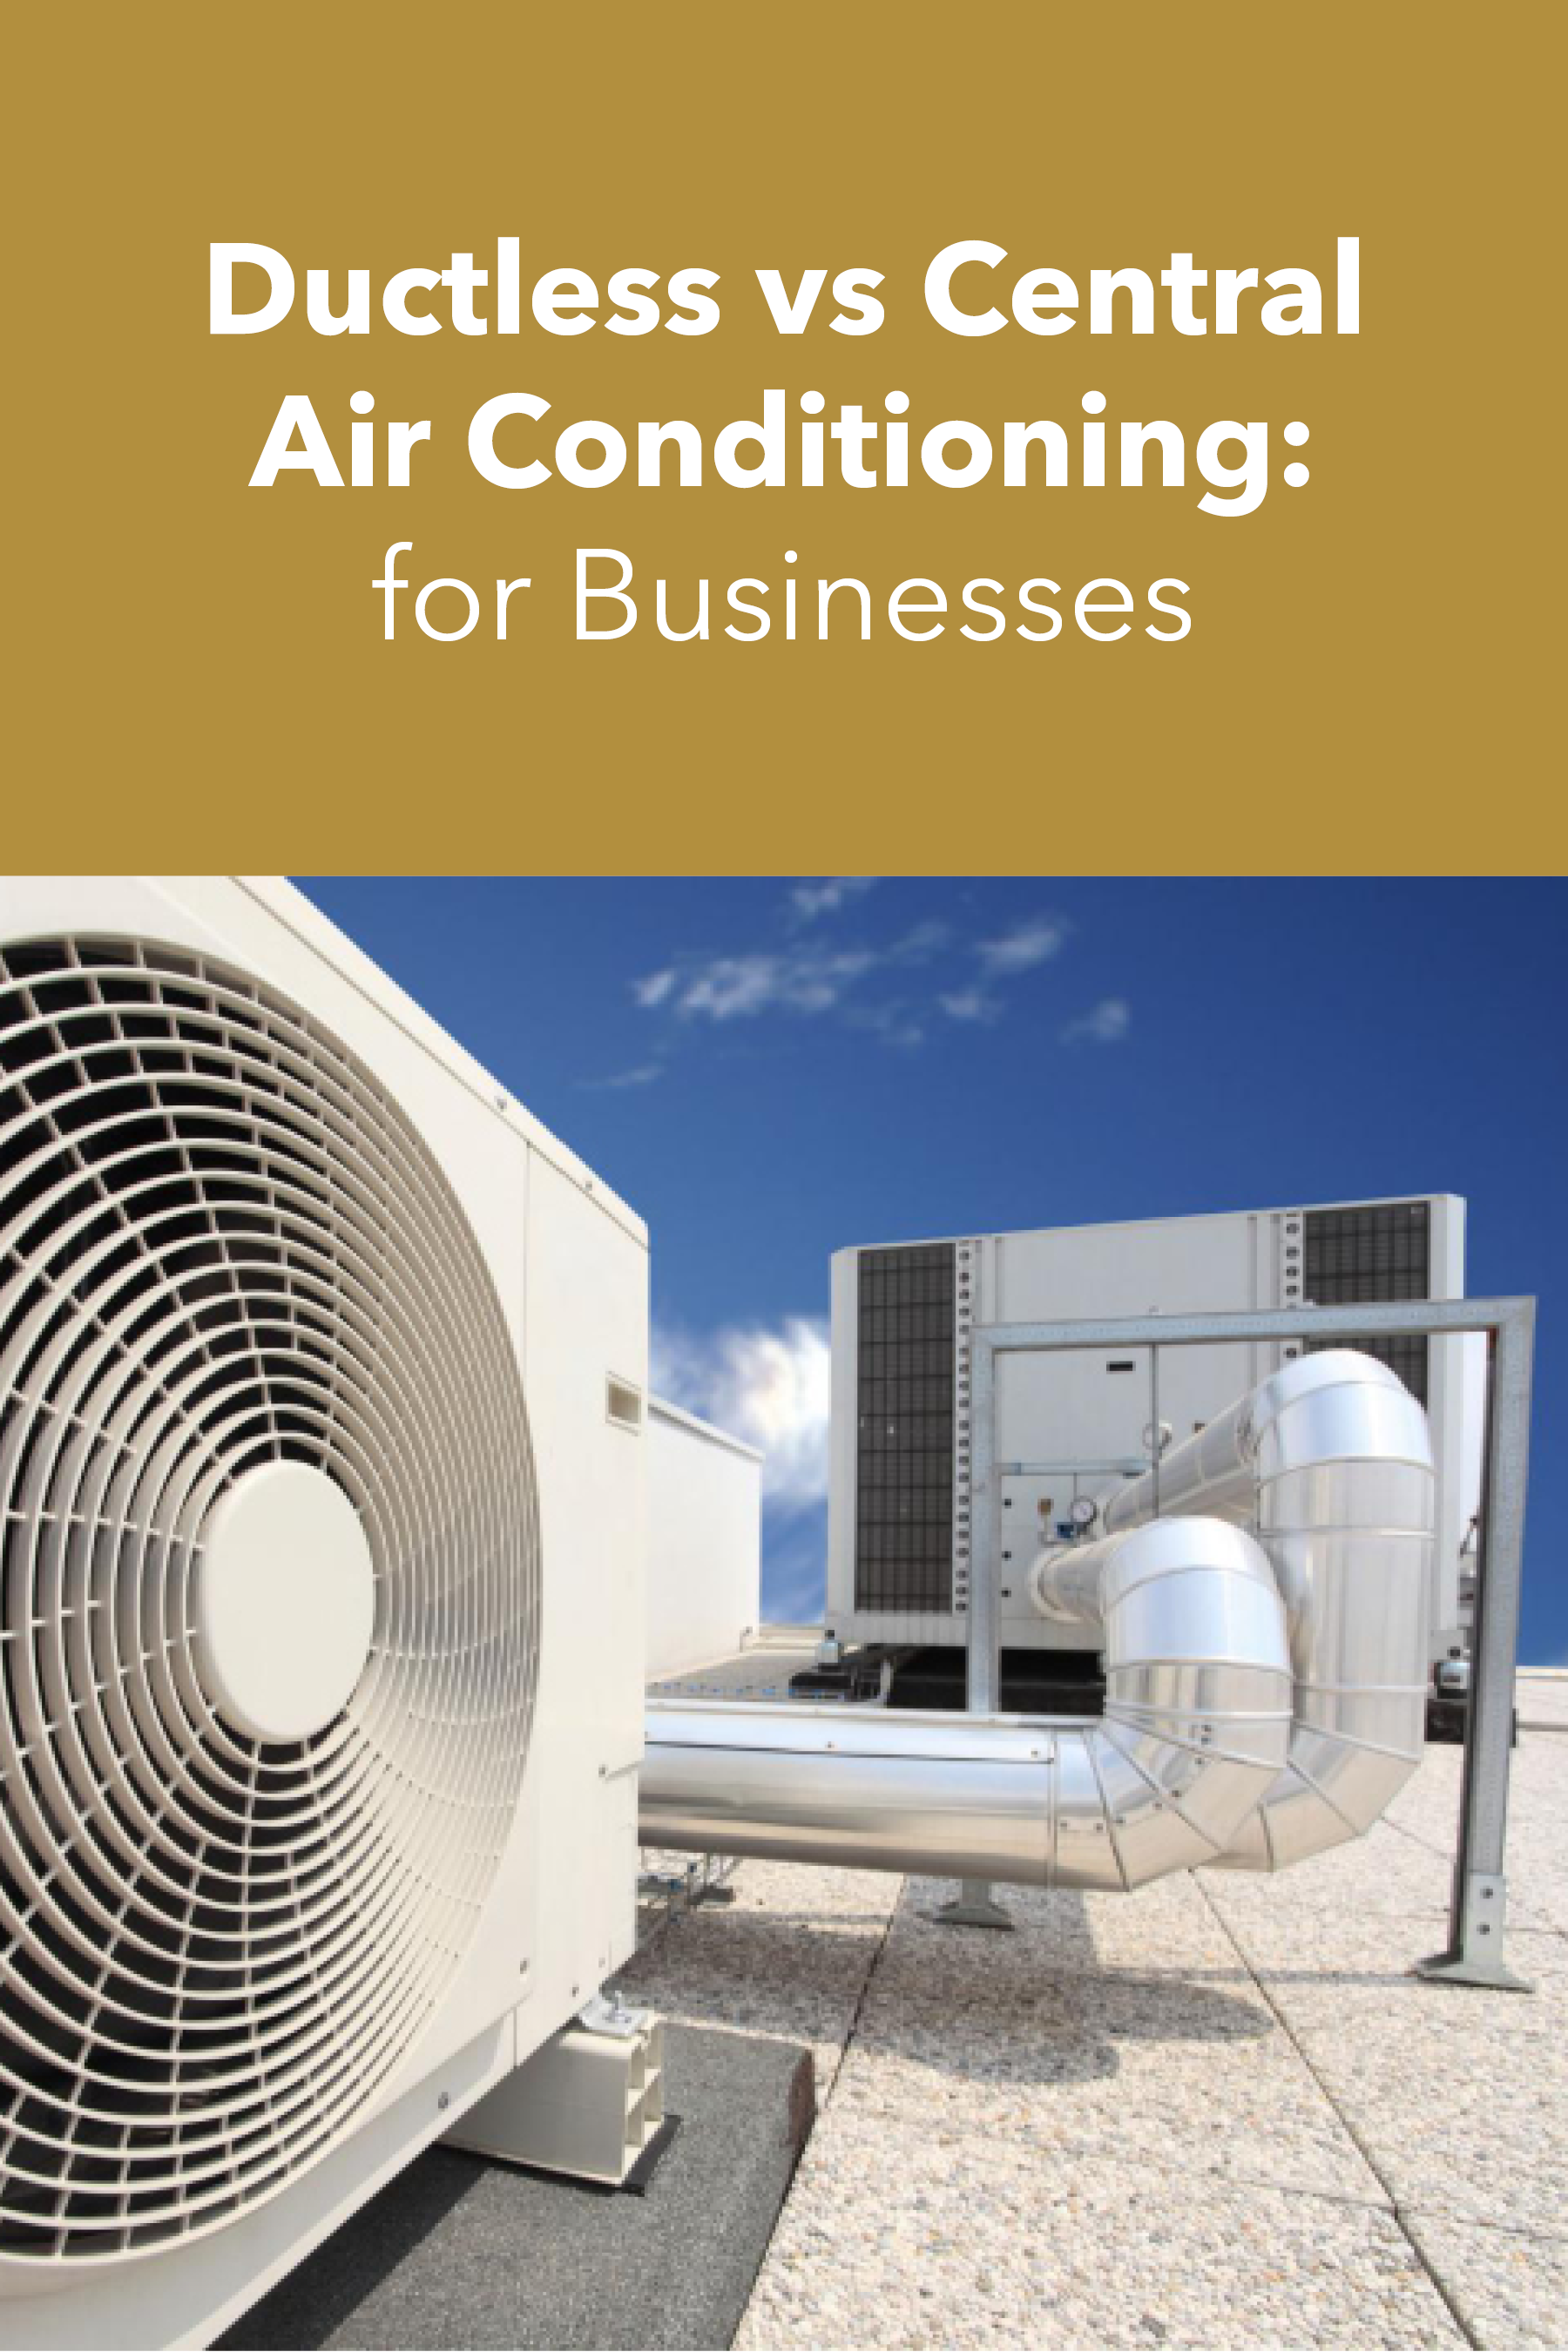 Ductless vs Central Air Conditioning for Businesses in